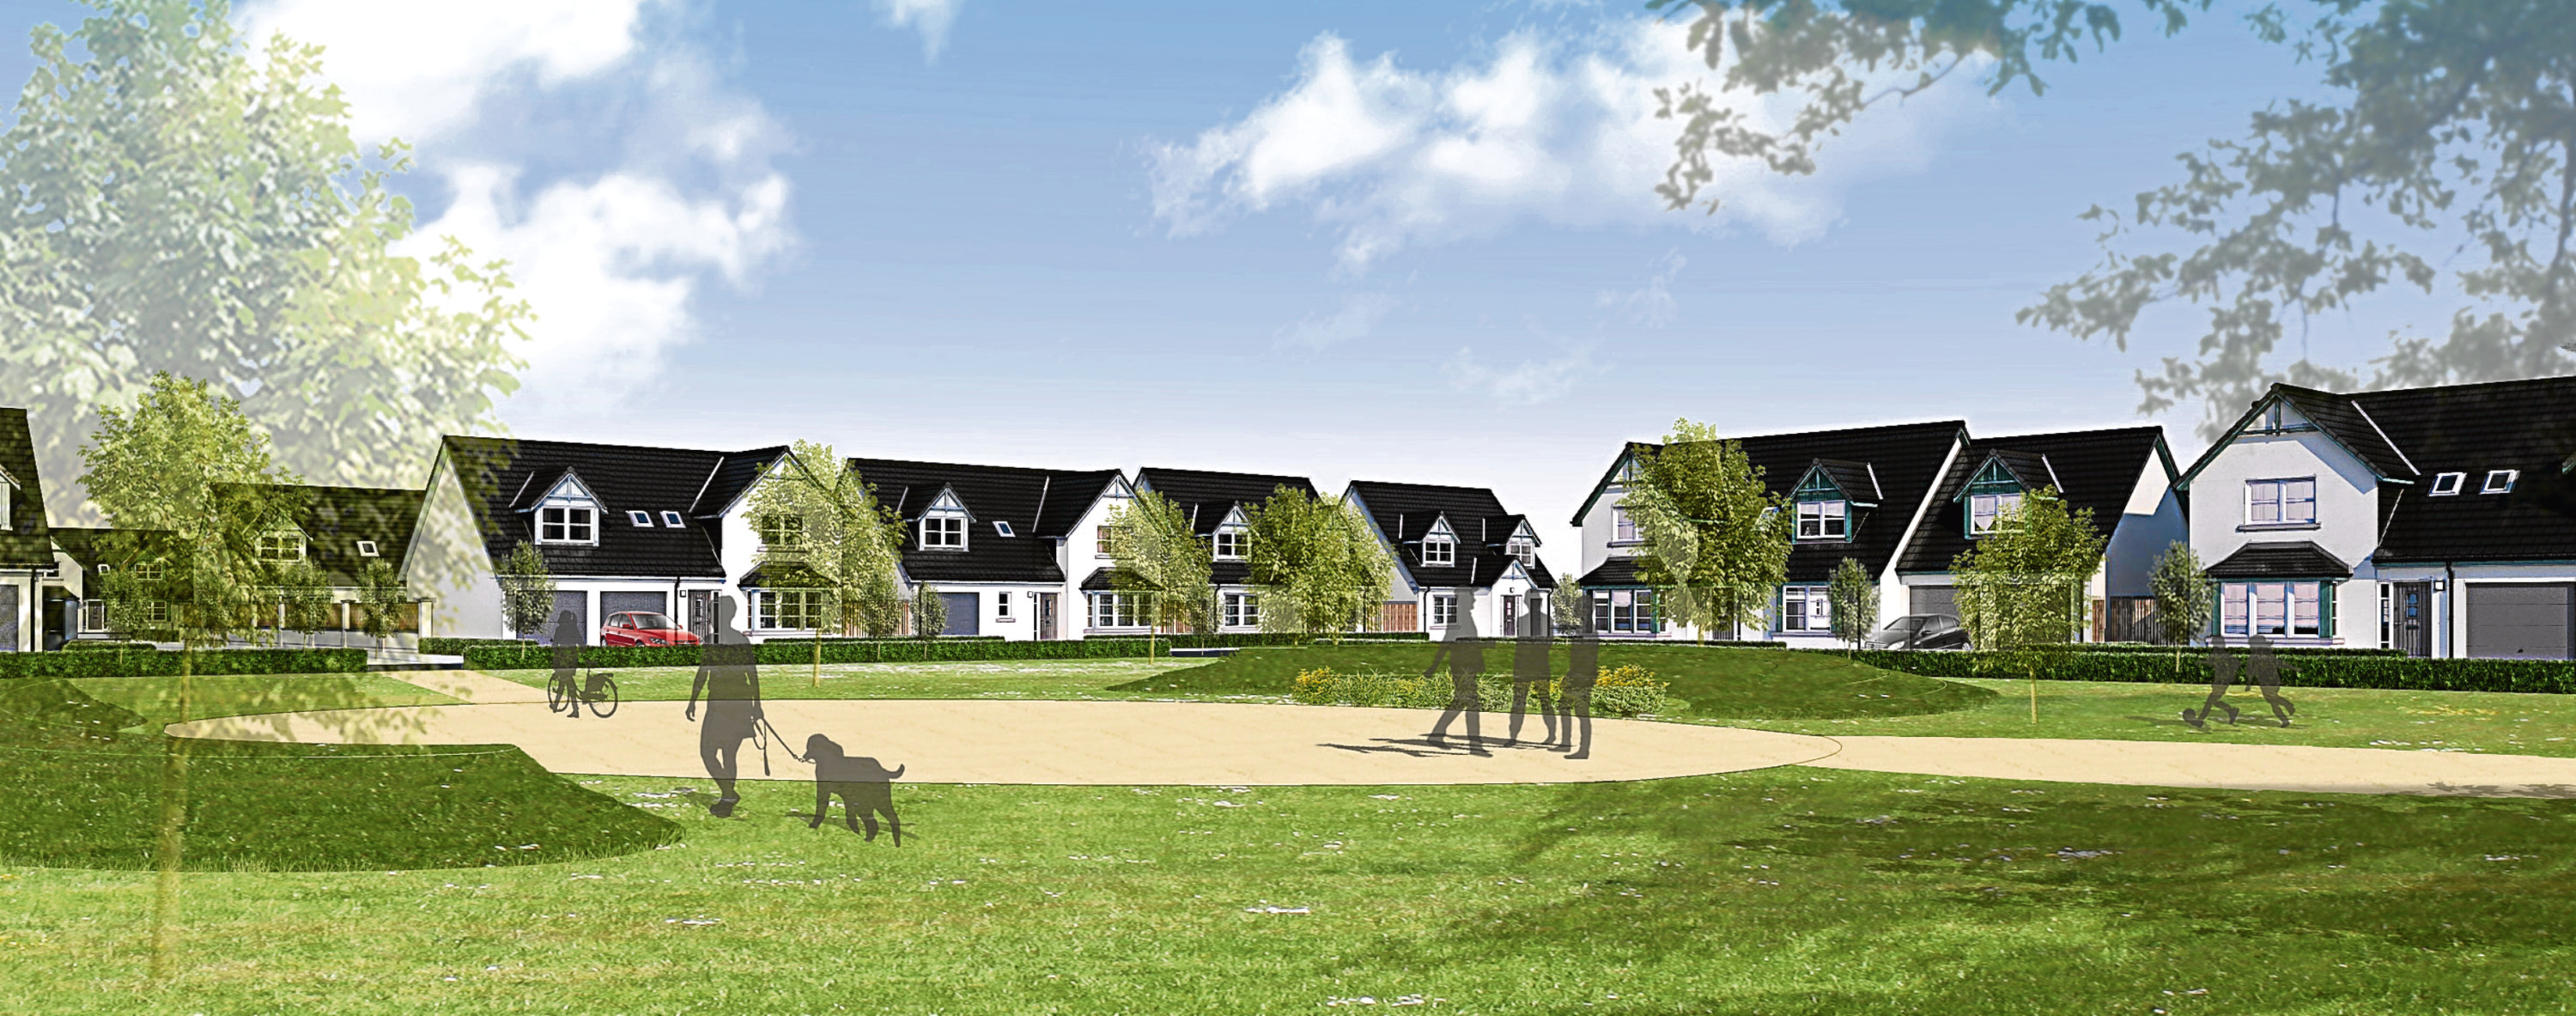 An artists impression of Balgillo Heights, a development by Kirkwood Homes.